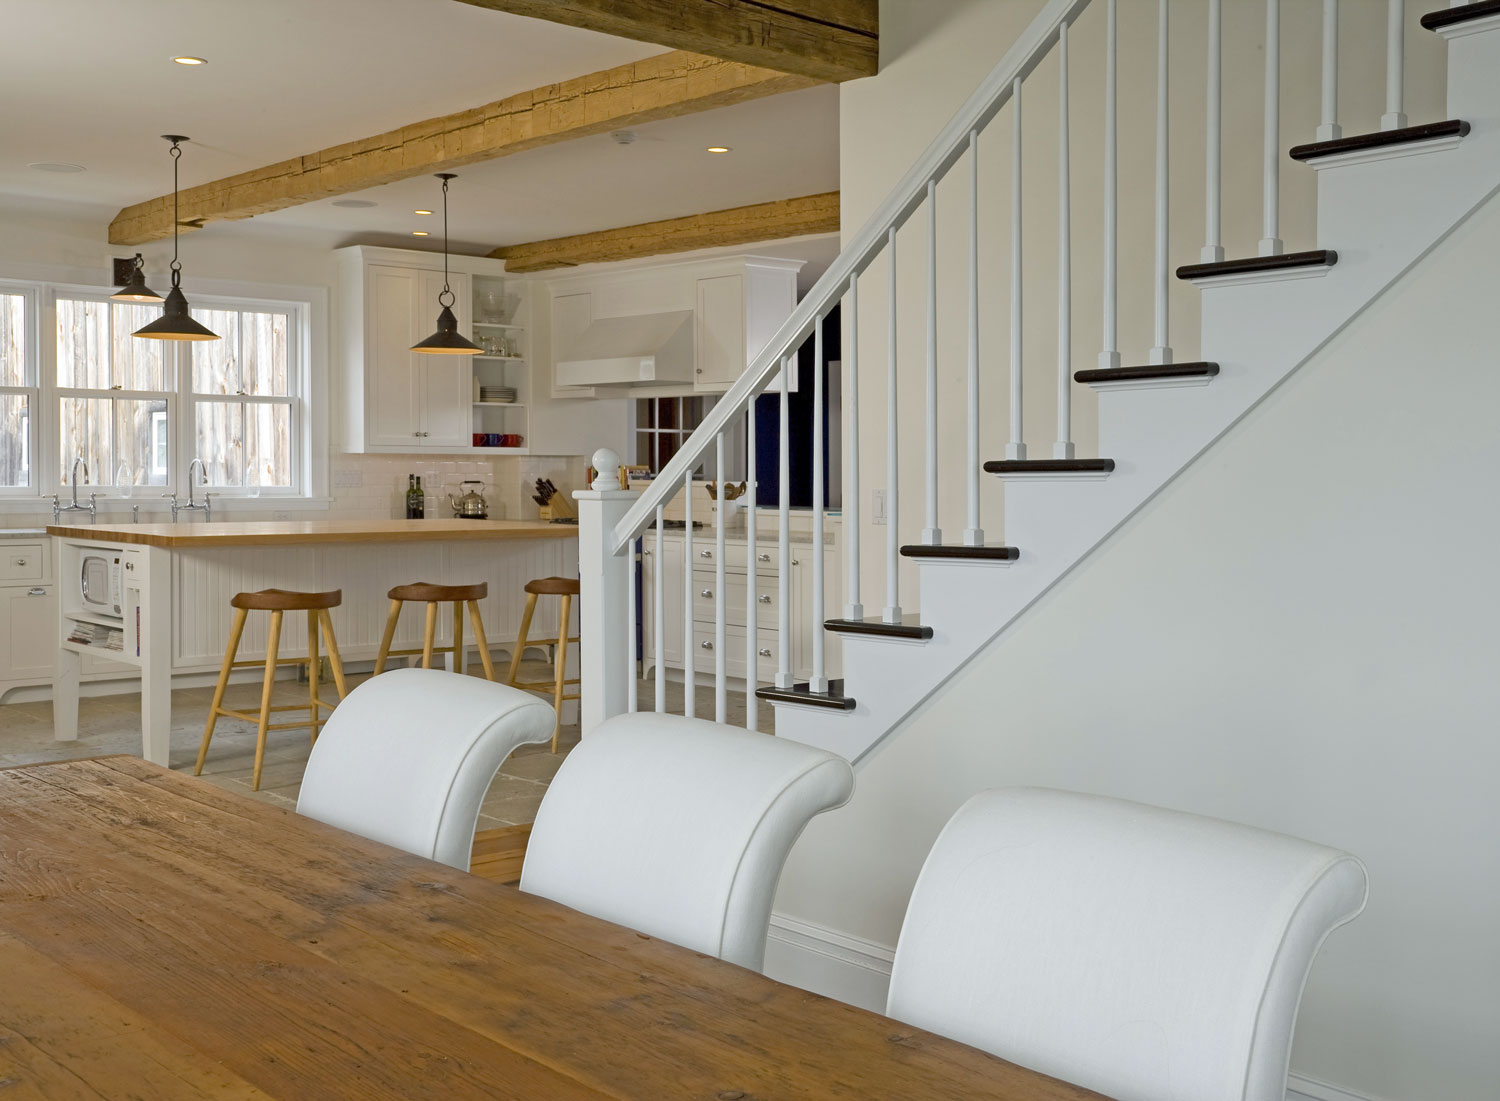 Design-Build-Dining-Room-Stair-well.jpg